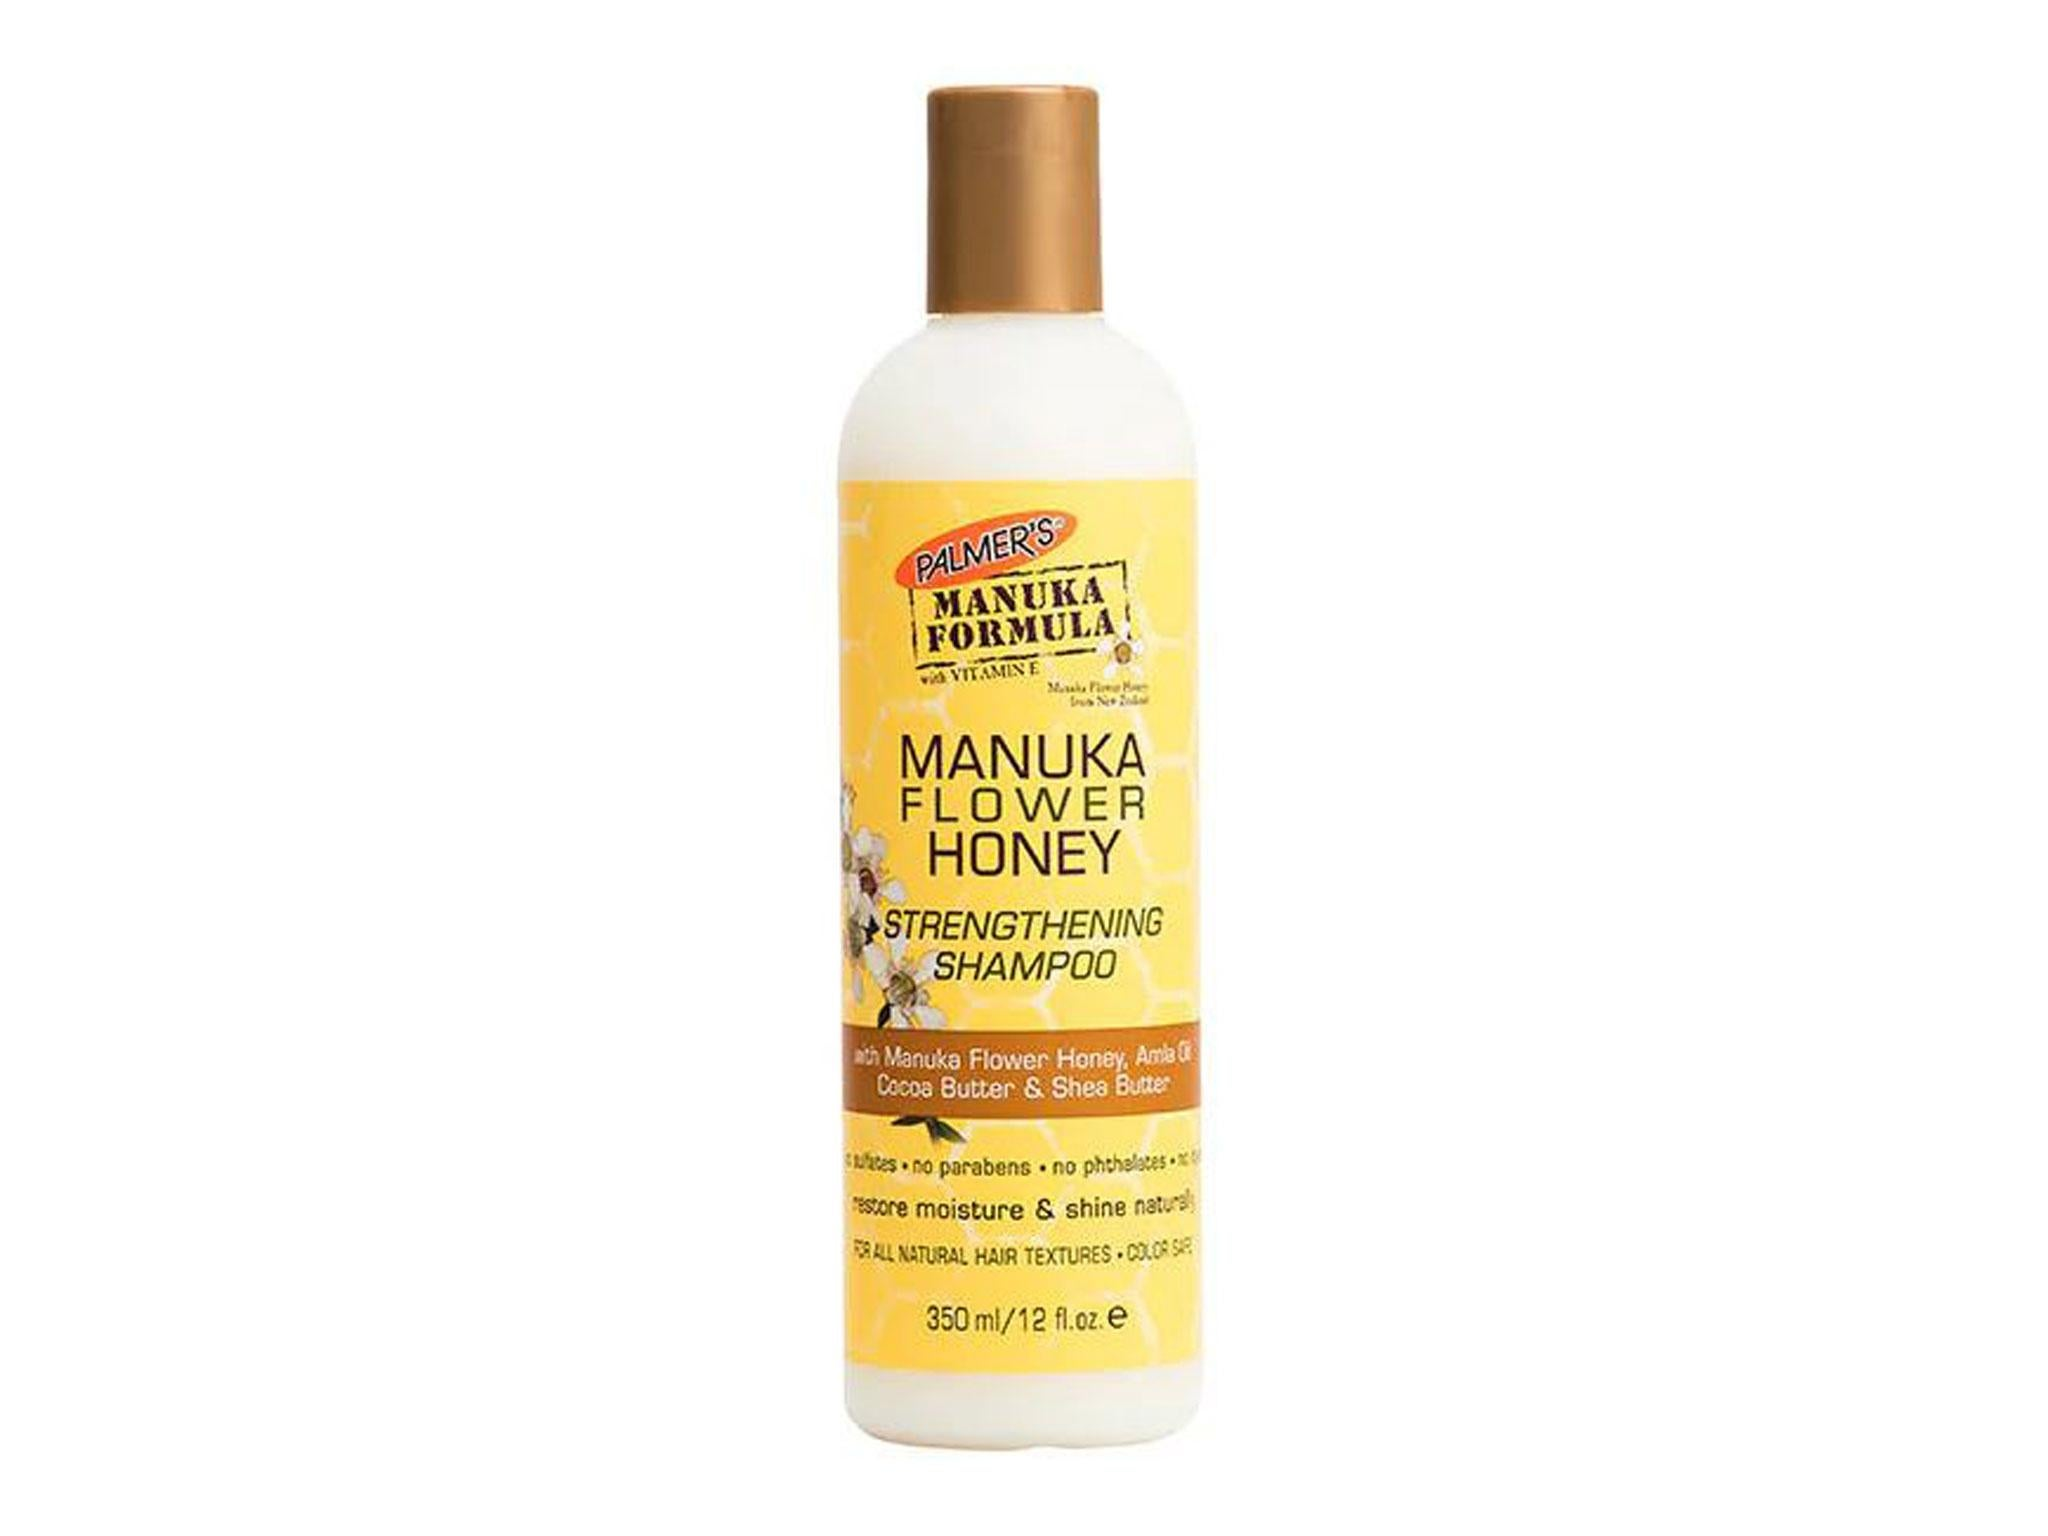 12 best shampoos and conditioners for afro hair | The